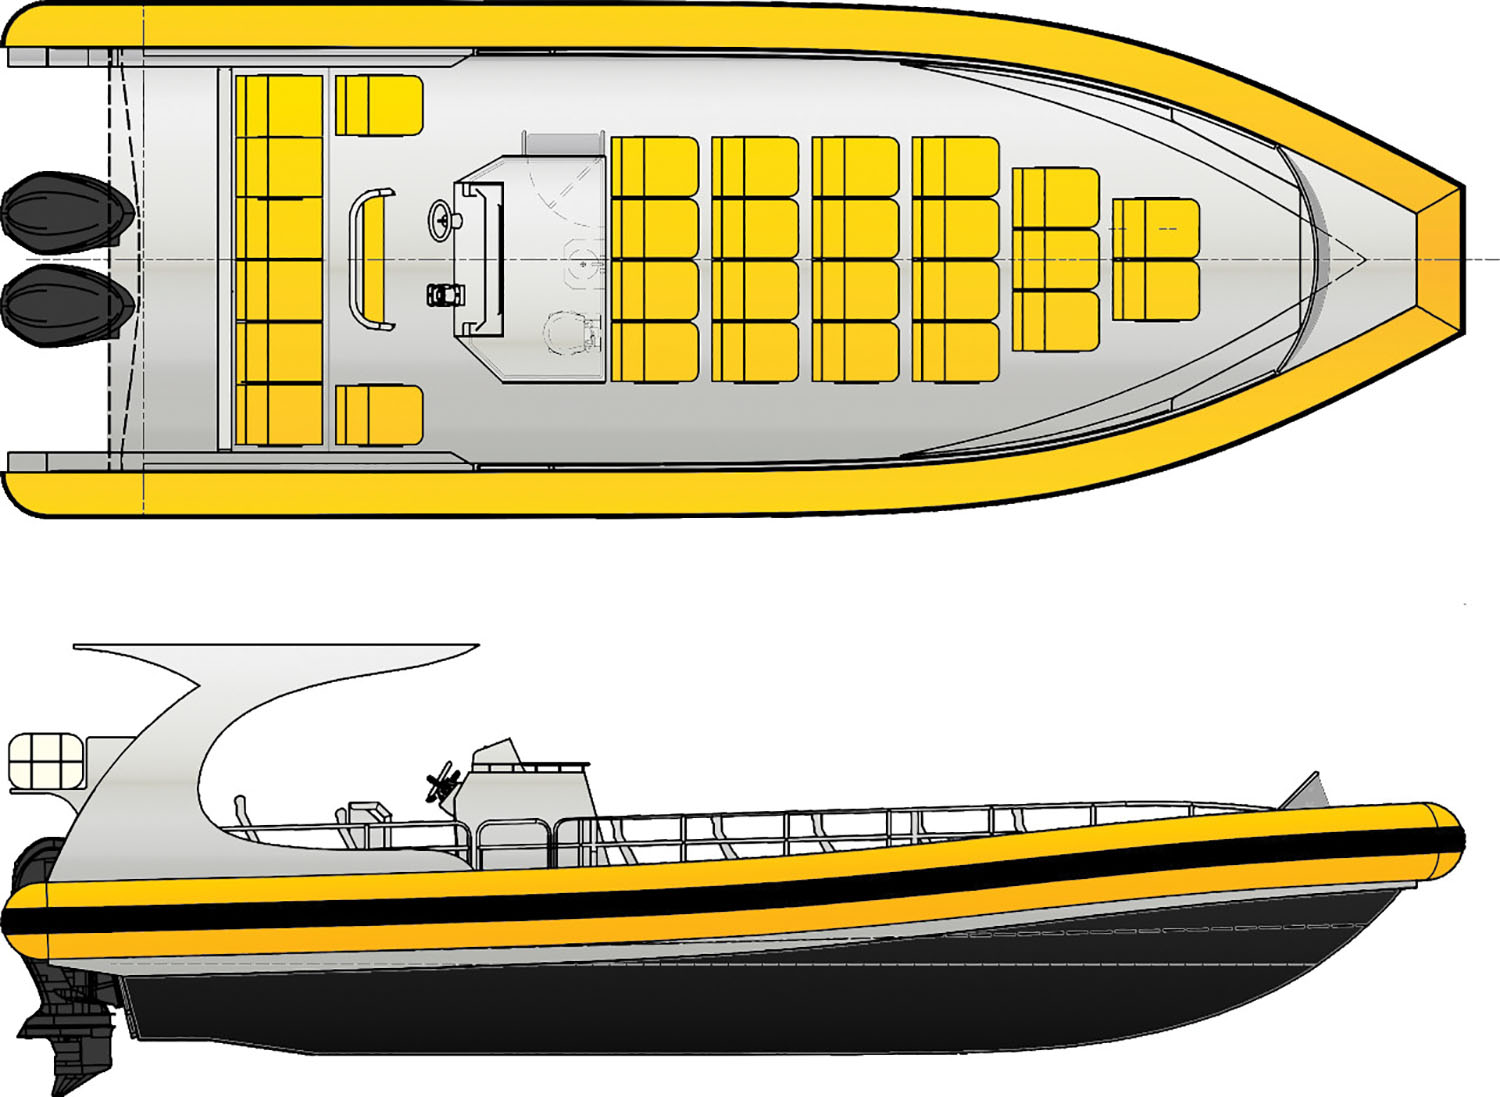 The 37-foot monohull vessel is under construction at Armstrong Marine. (drawings courtesy of Armstrong Marine)